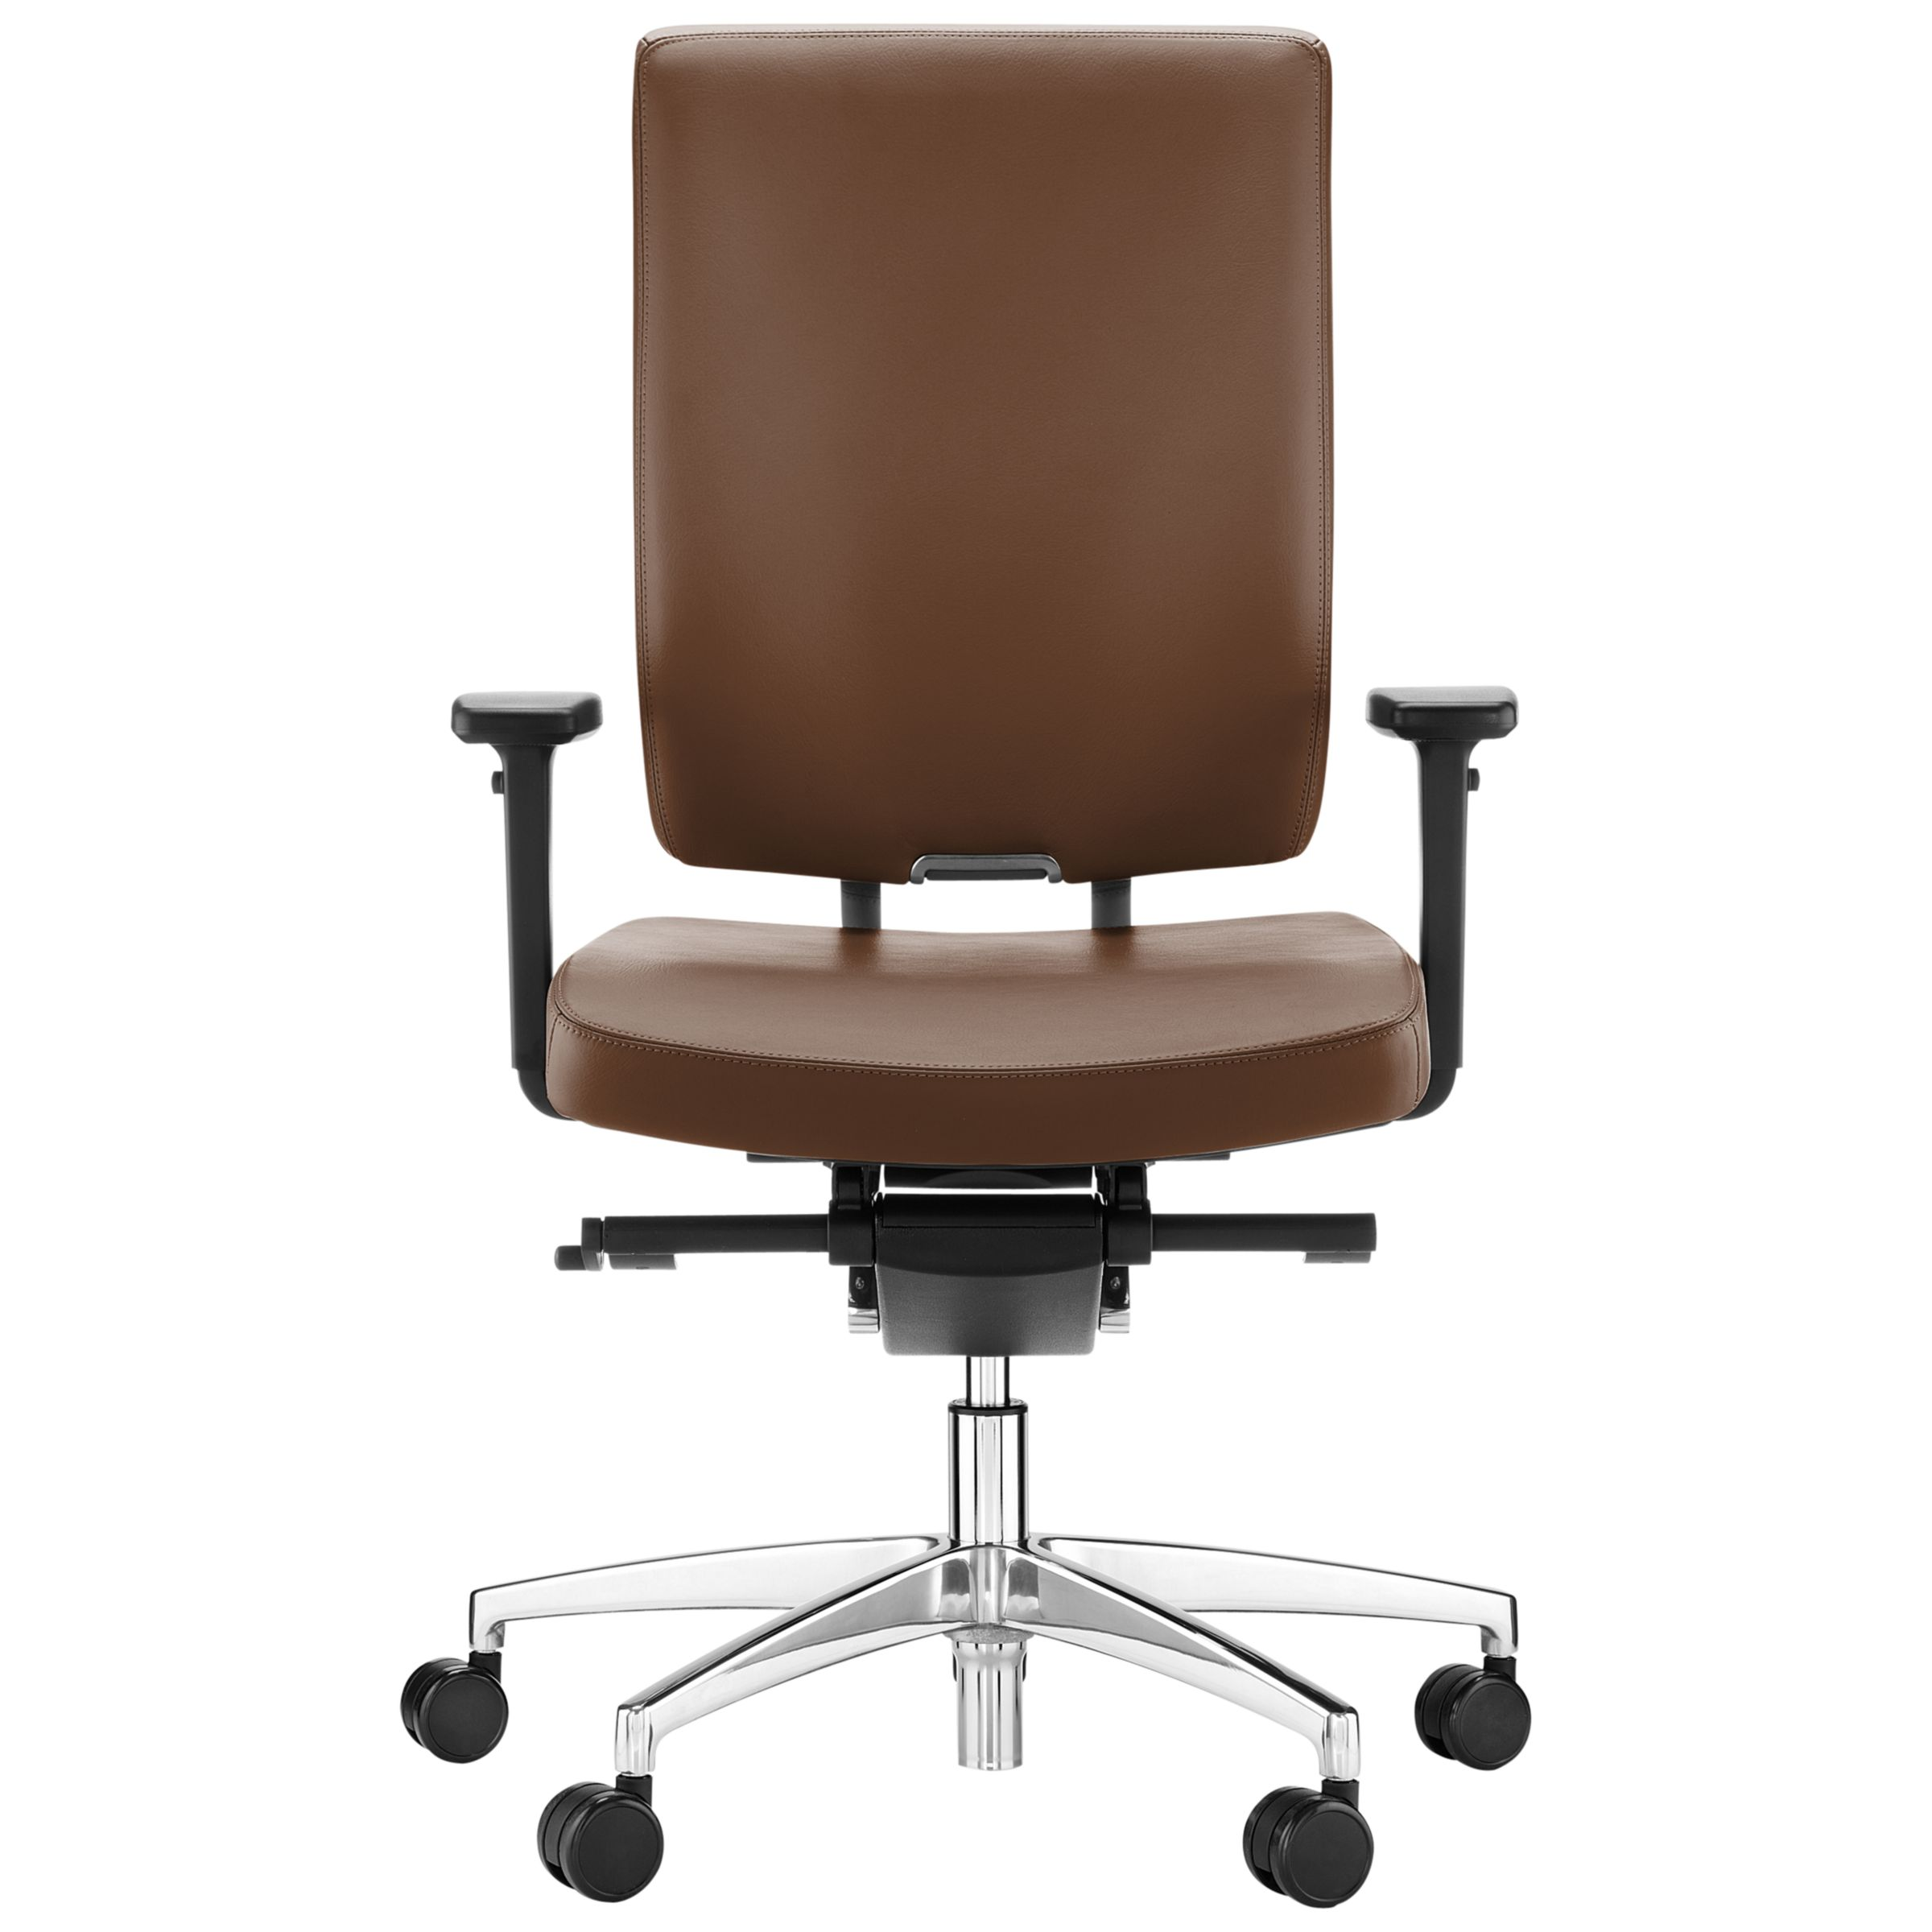 Brown leather office chair | Shop for cheap Chairs and Save online